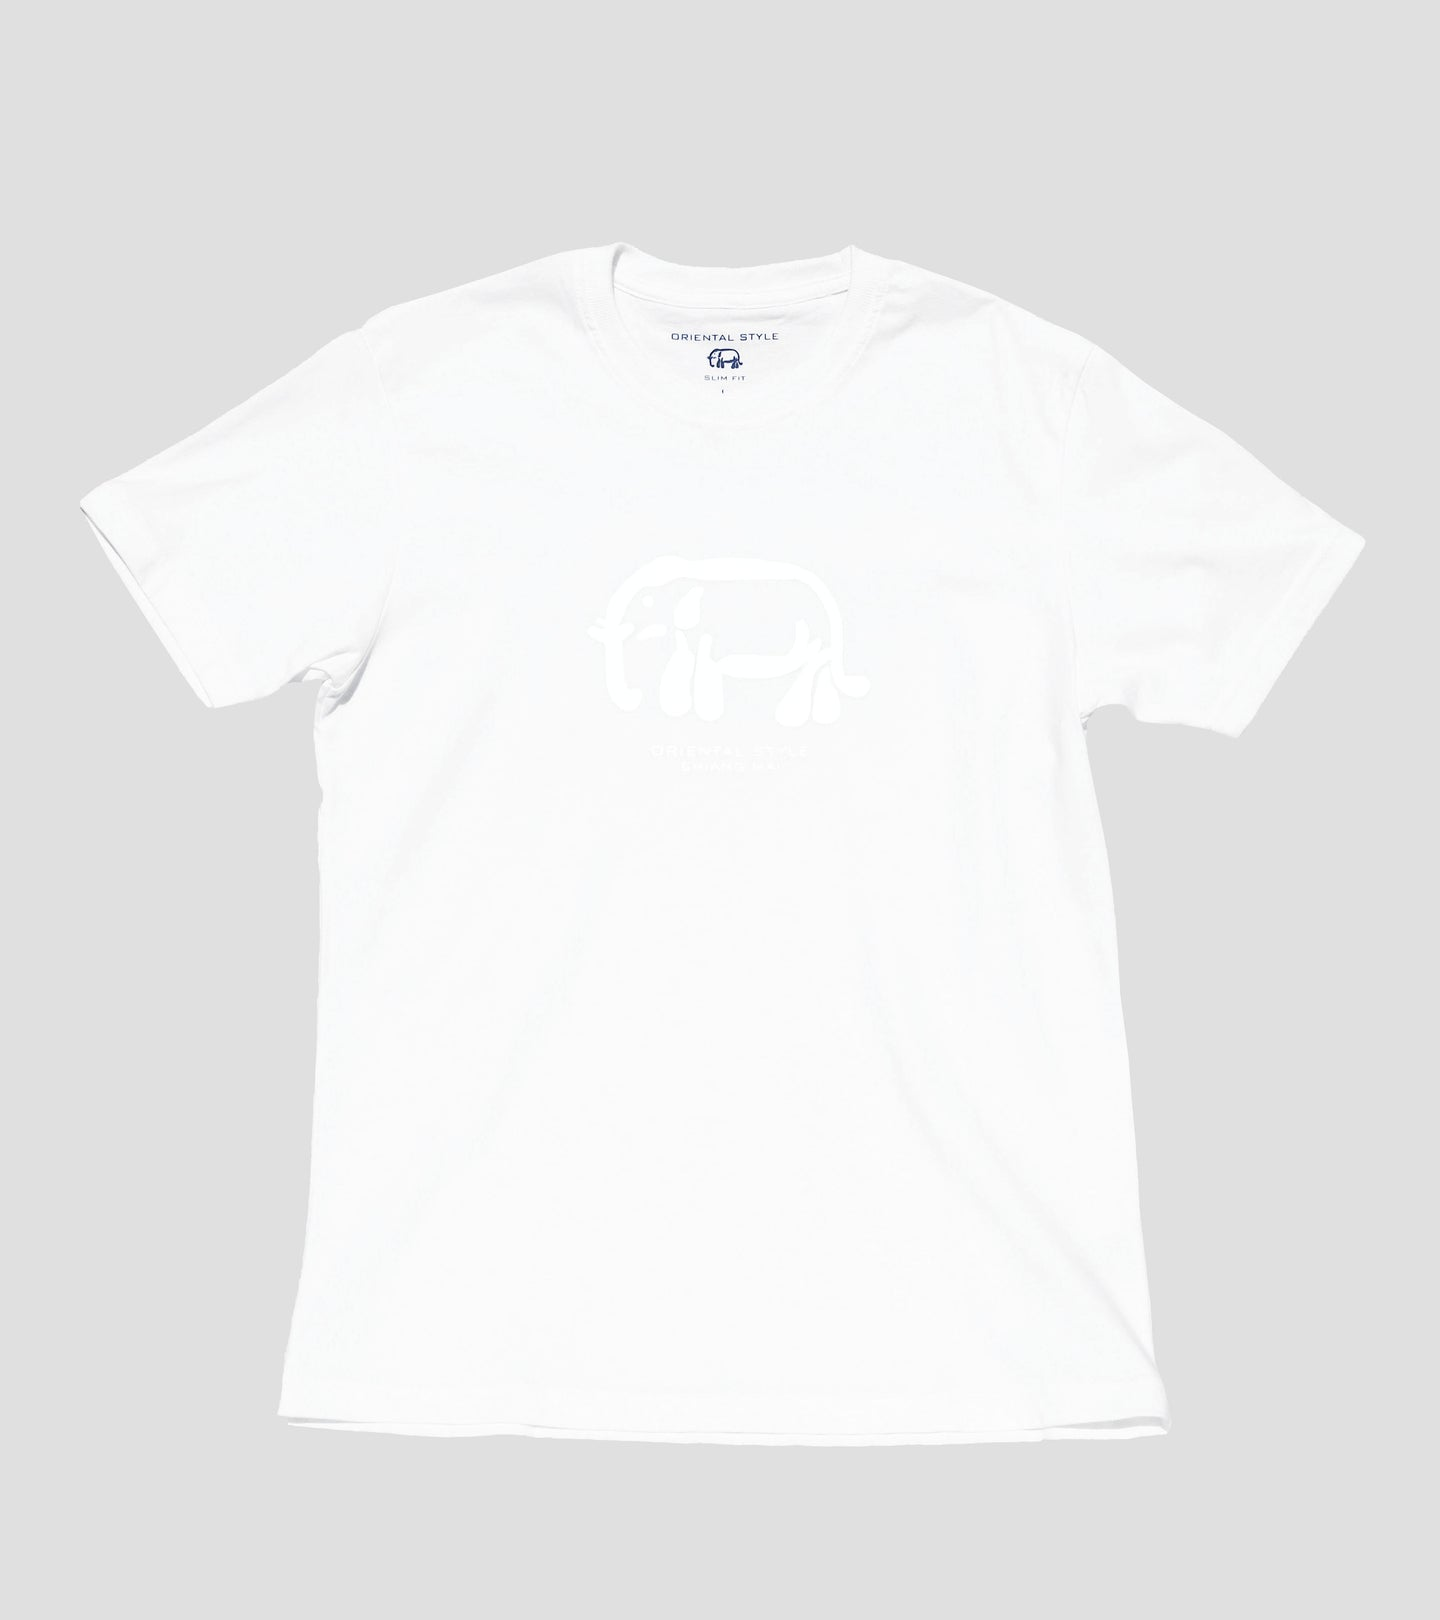 OS PLAIN LOGO T-SHIRT